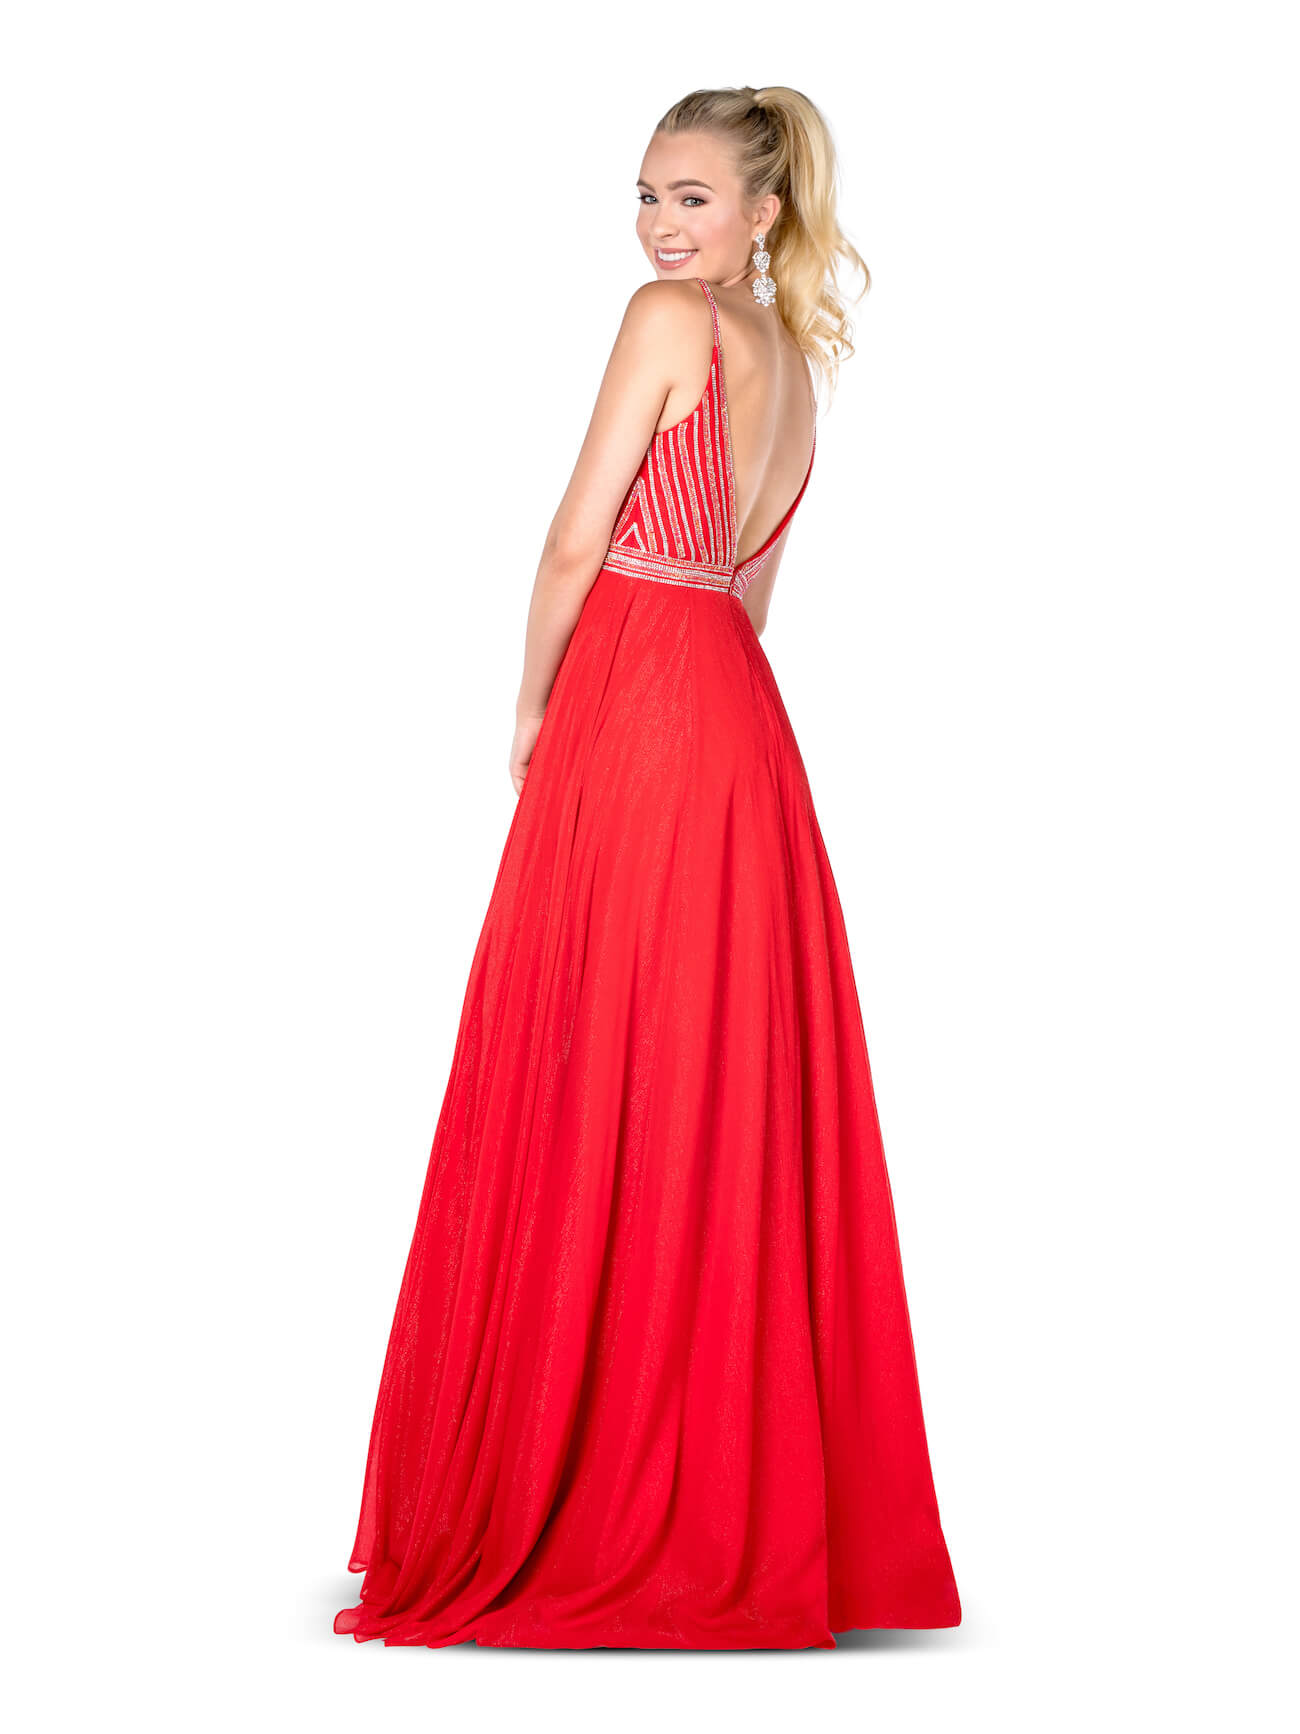 Vienna Red Size 6 Backless A-line Dress on Queenly